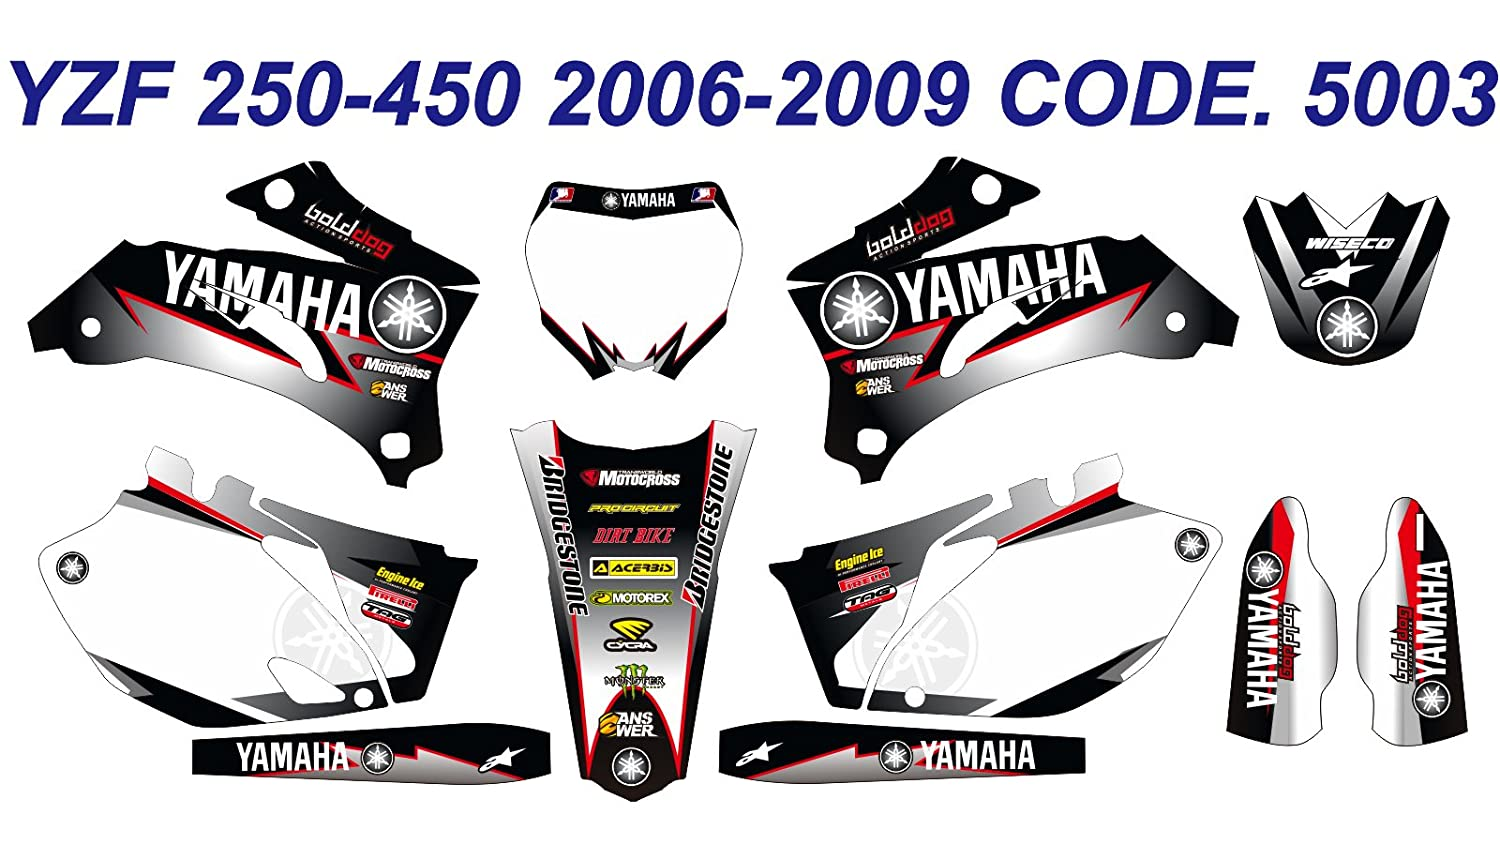 5003 YAMAHA YZ250F YZ450F 2006-2009 06-09 DECALS STICKERS GRAPHICS KIT Dog Racing Design